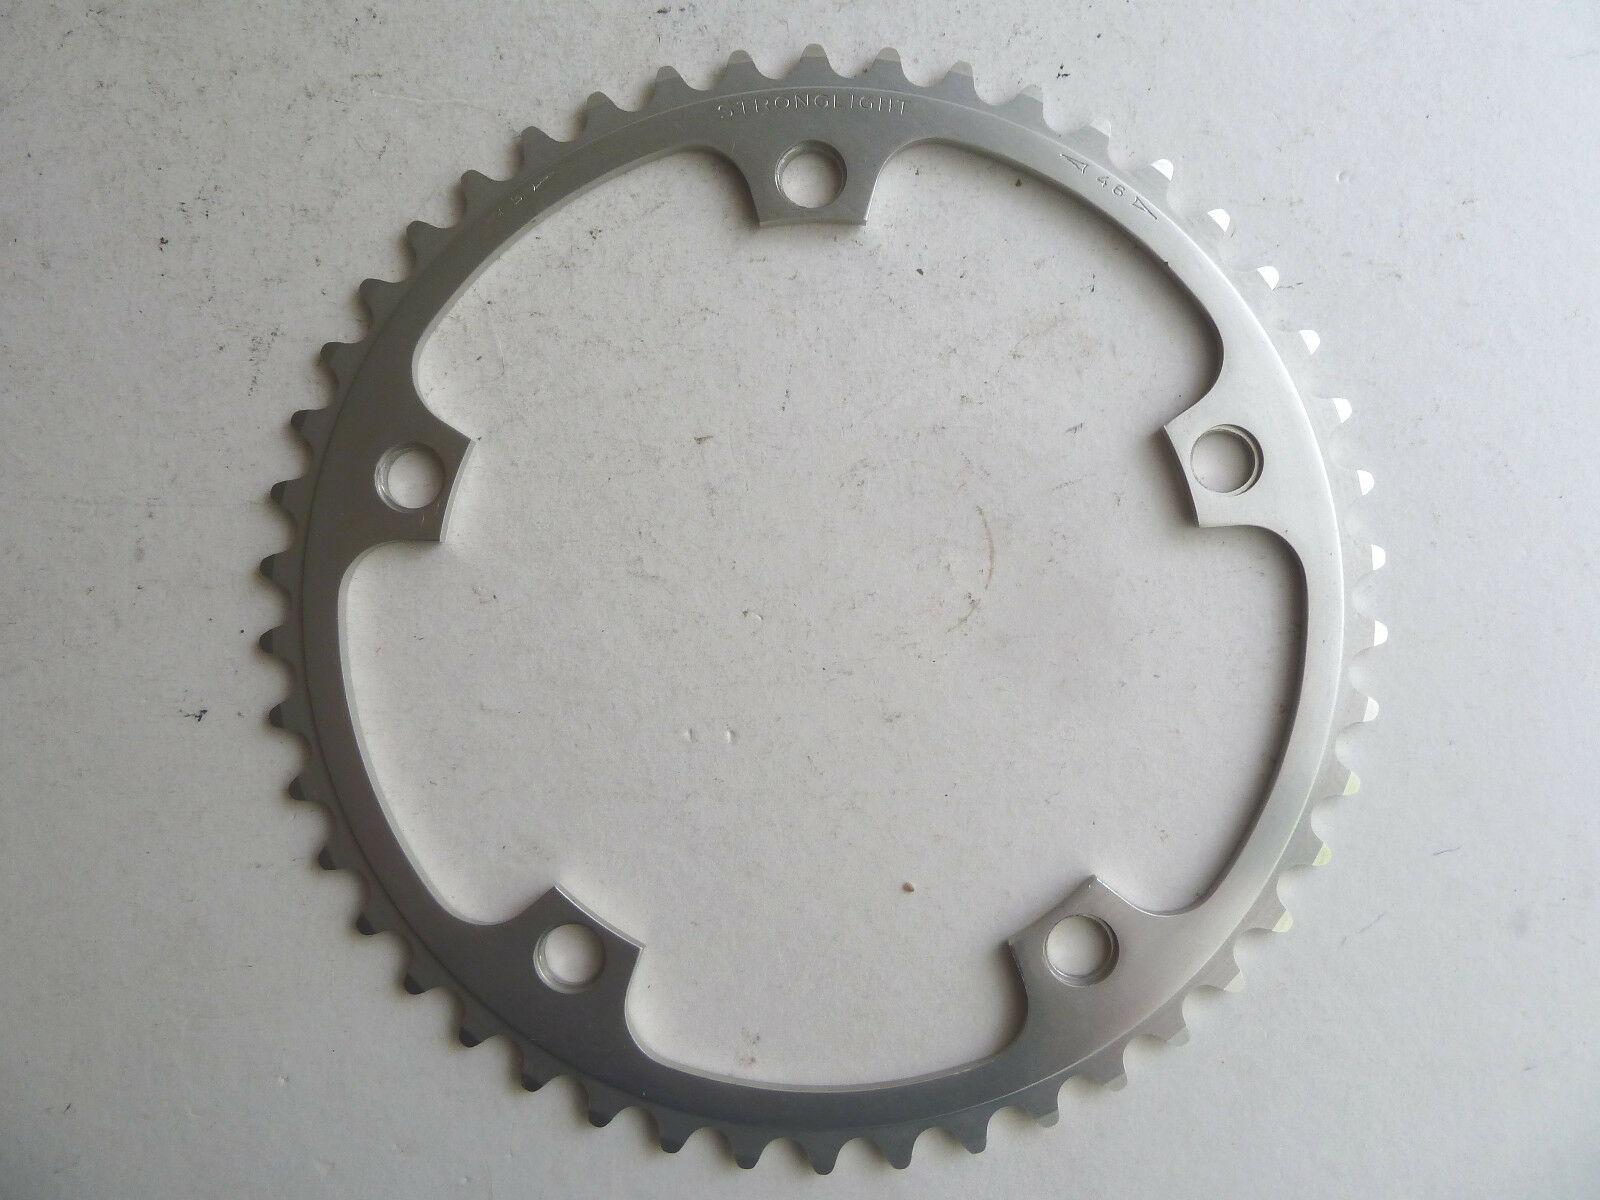 Vintage Stronglight 106 road chainring, 46 t,  144, 3 32 , VGC, eroica  high discount